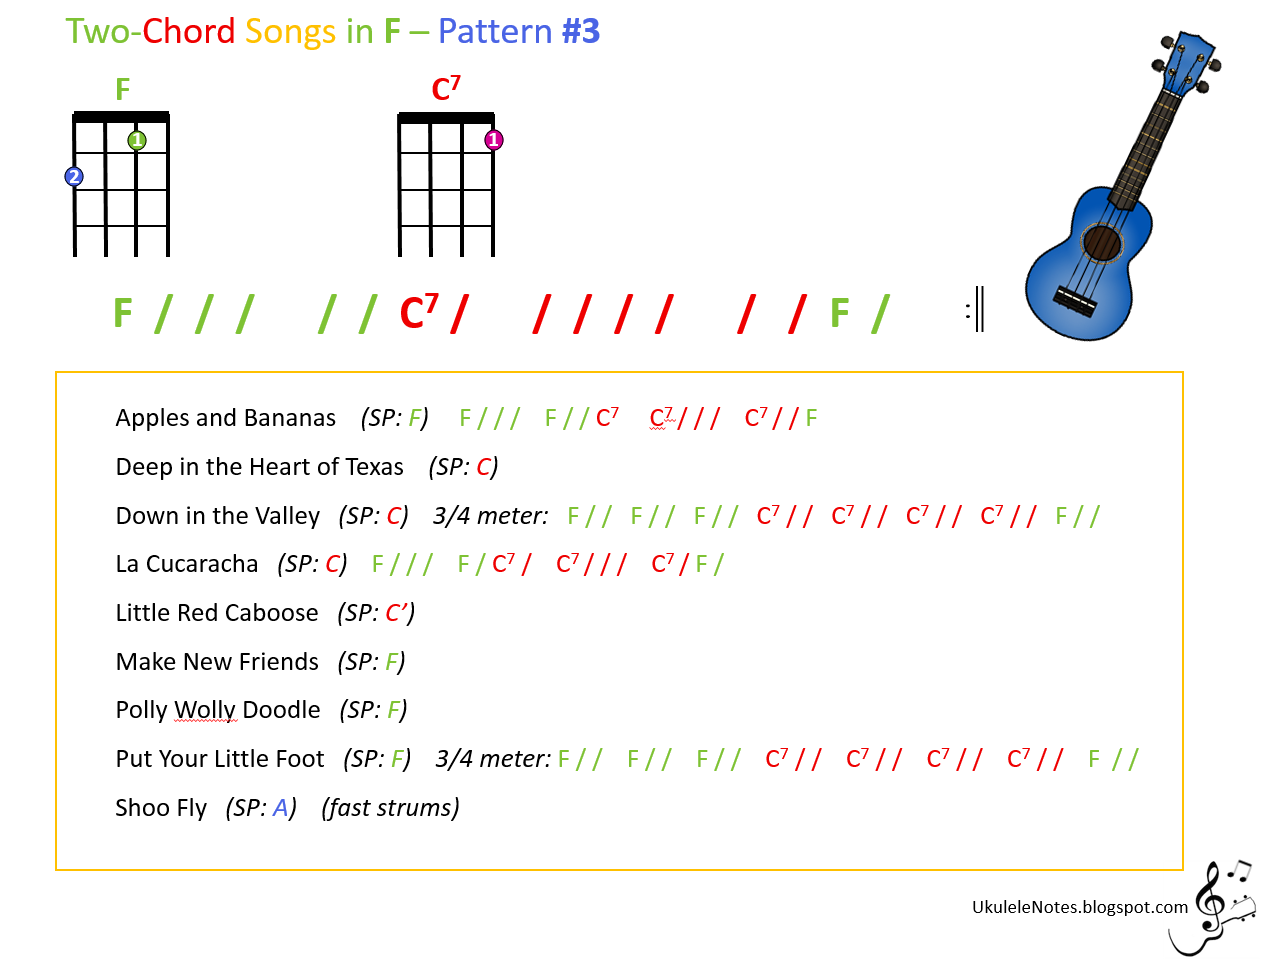 Jeris youkulele notes 2016 two chord songs in f pattern 3 hexwebz Gallery